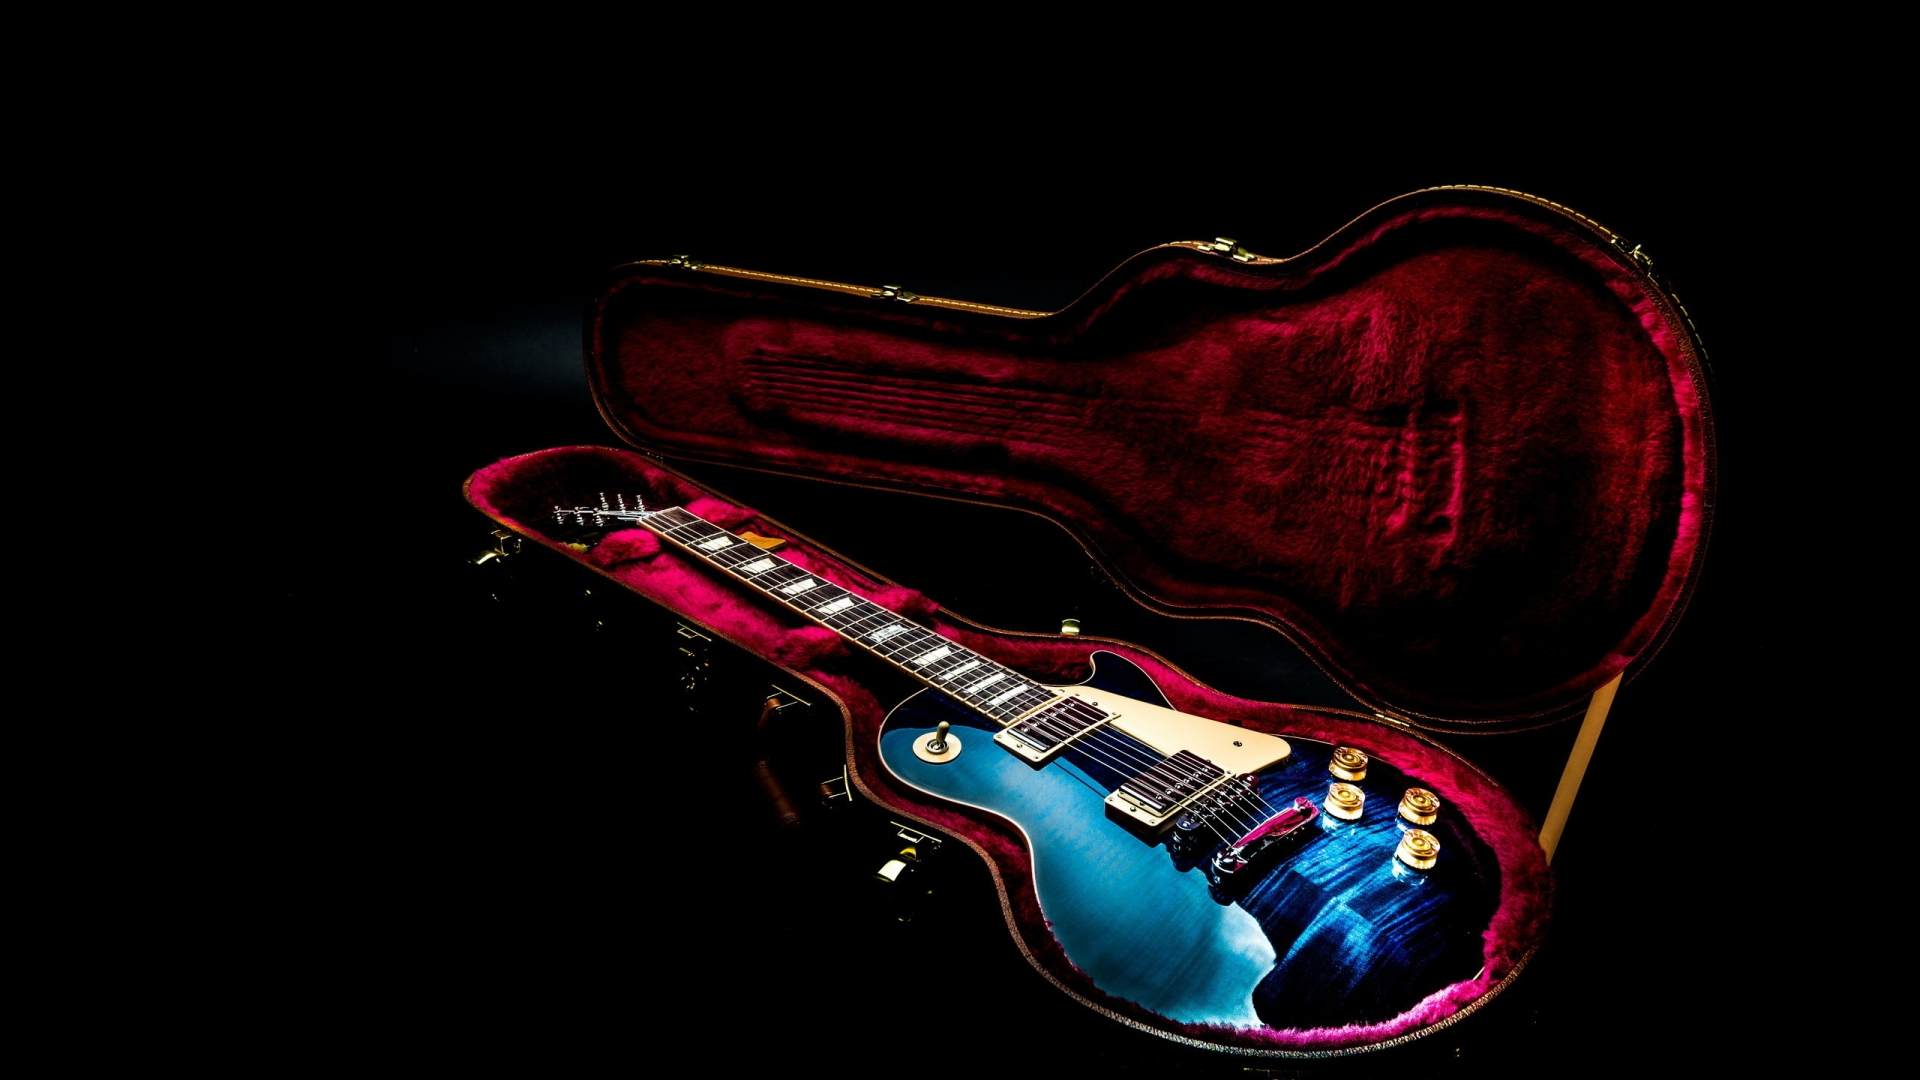 3d Cartoon Love Wallpaper Download Colorful Guitar In A Red Cover Music Wallpaper